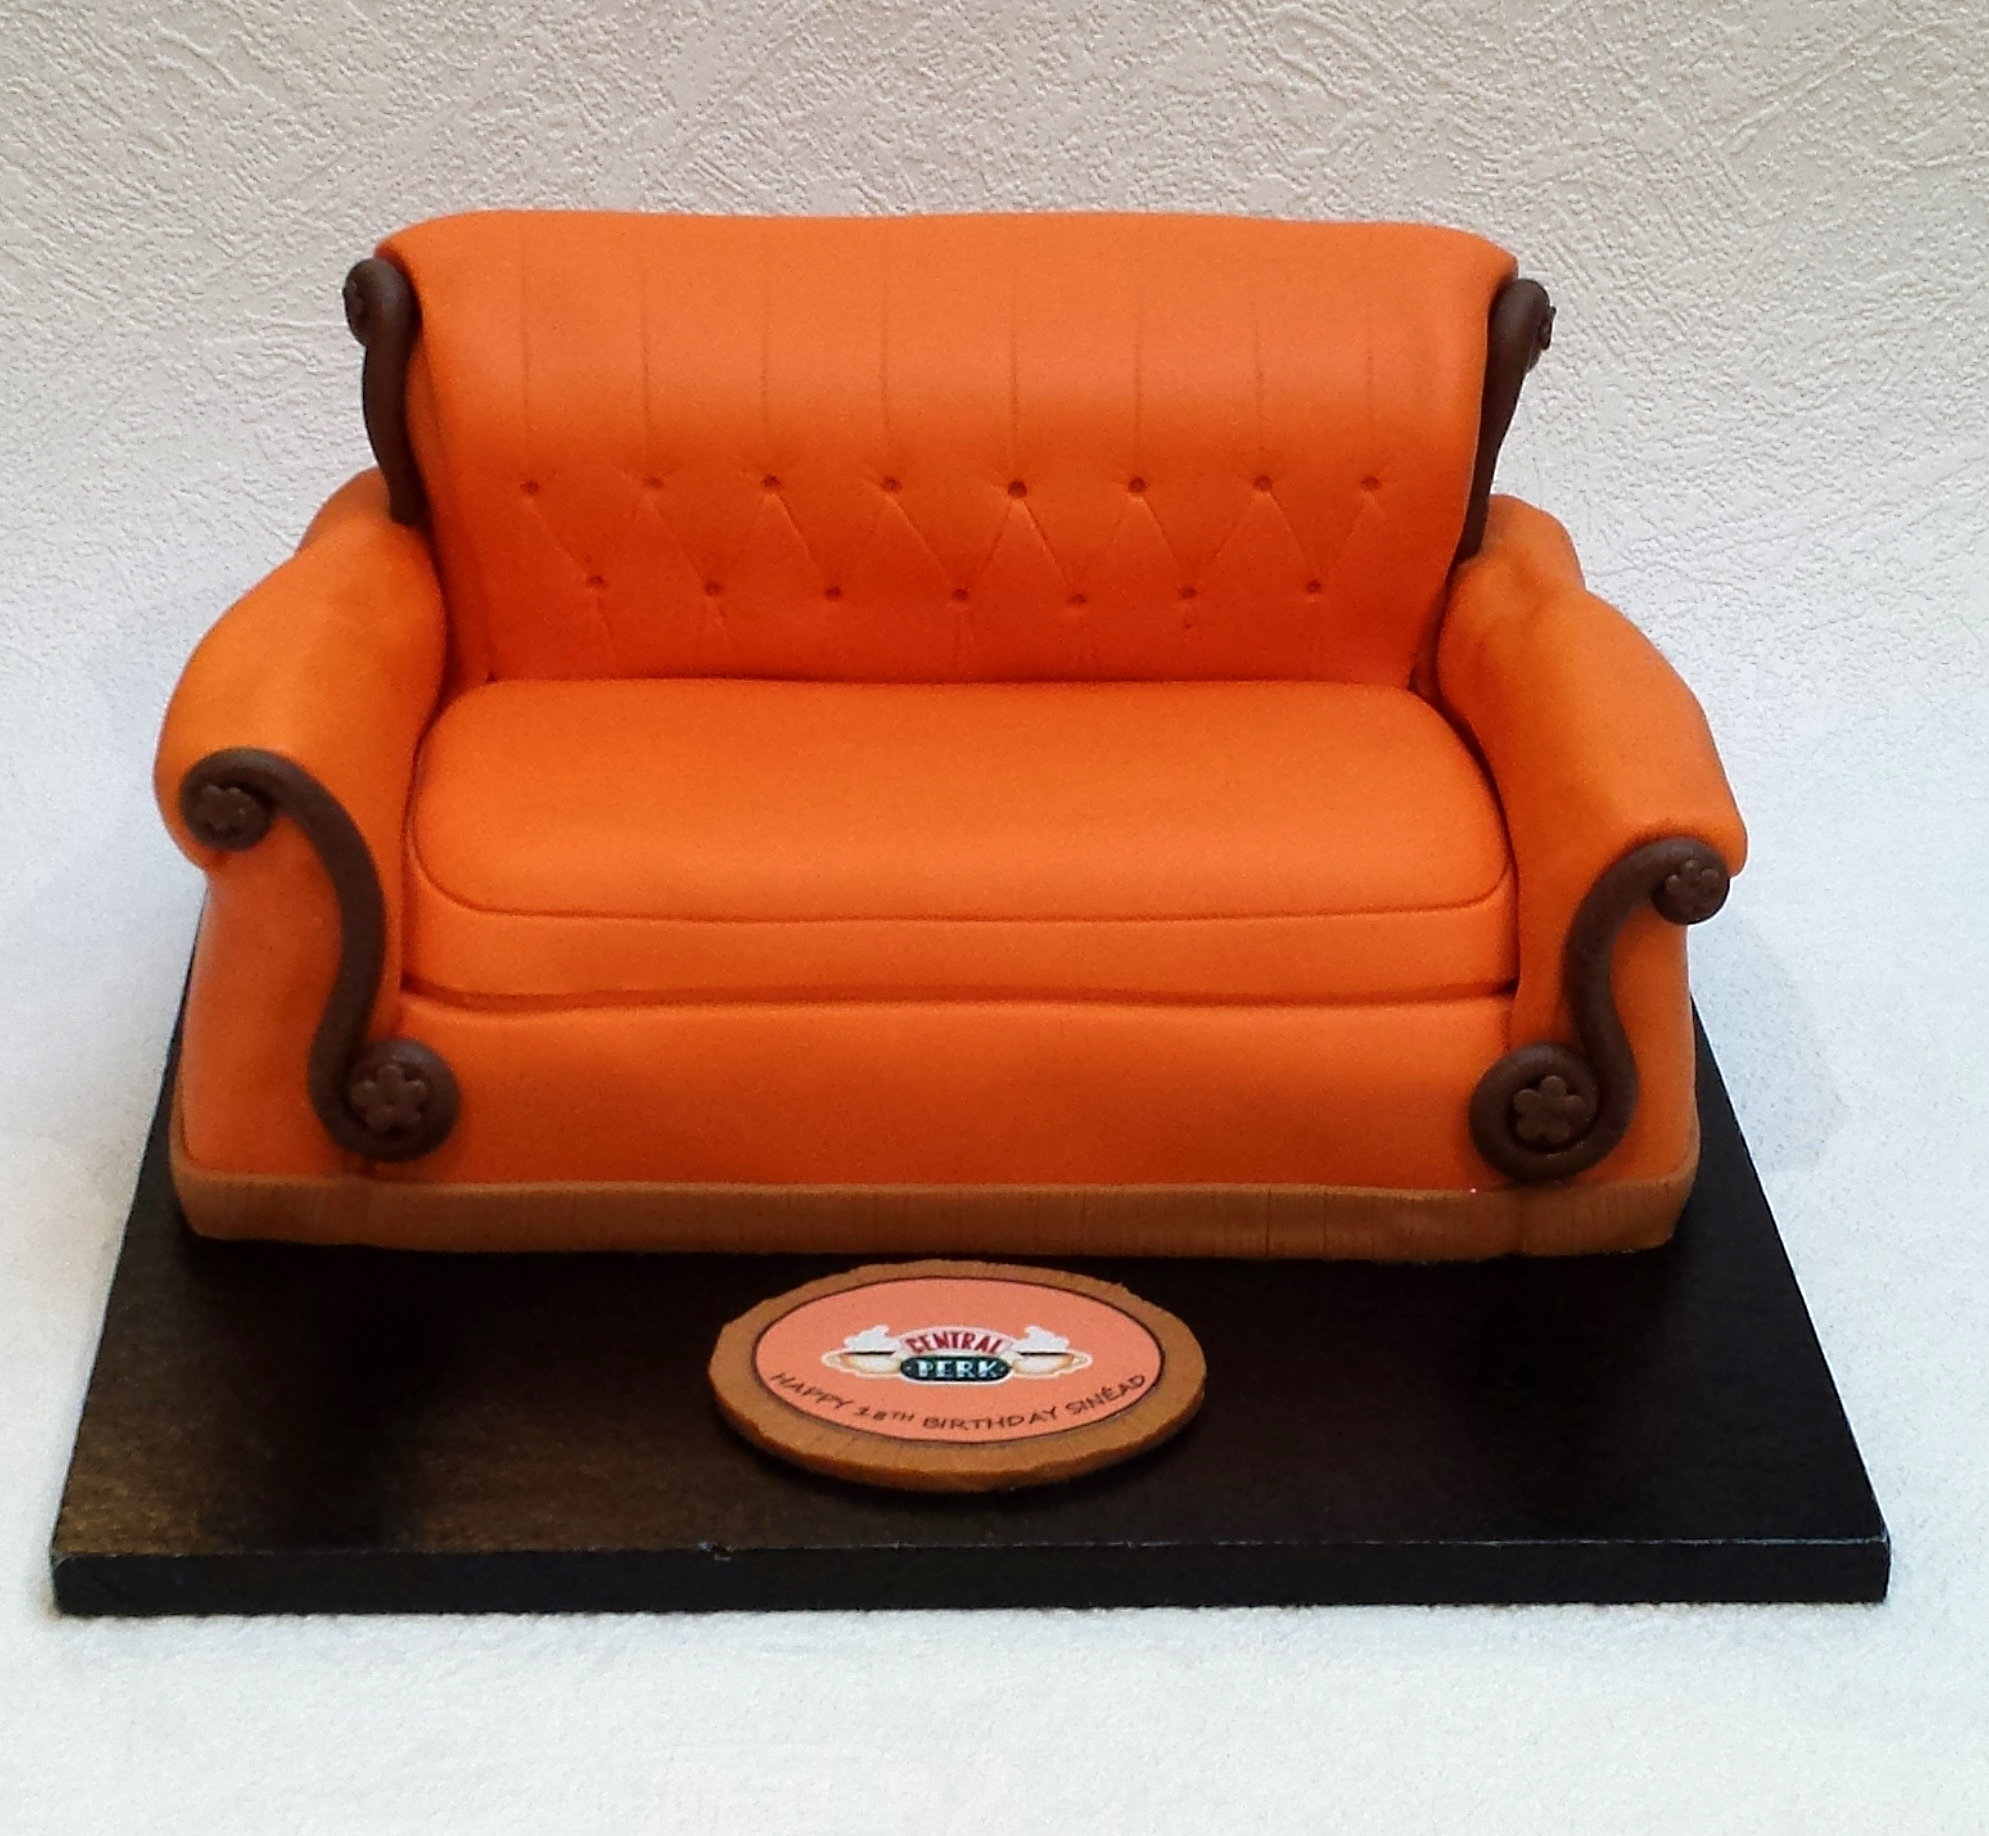 Sweet Tracey Cakes Friends Couch Cake Central Perk